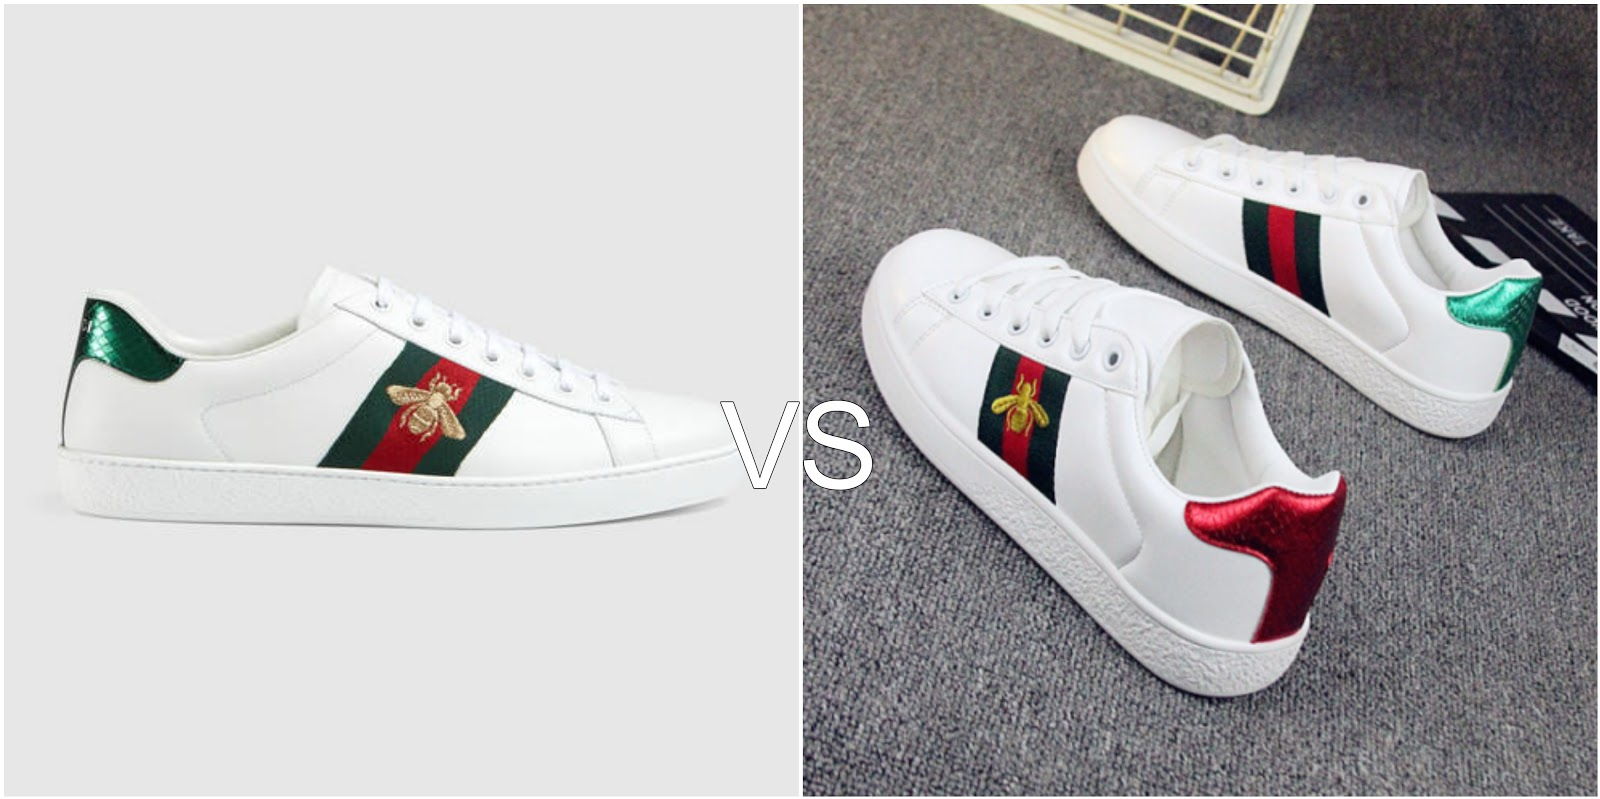 The Gucci Bee Sneakers have been all over my instagram feed recently and I  am obsessed with them. Unfortunately I don't have £450 to spare but the  replicas ...